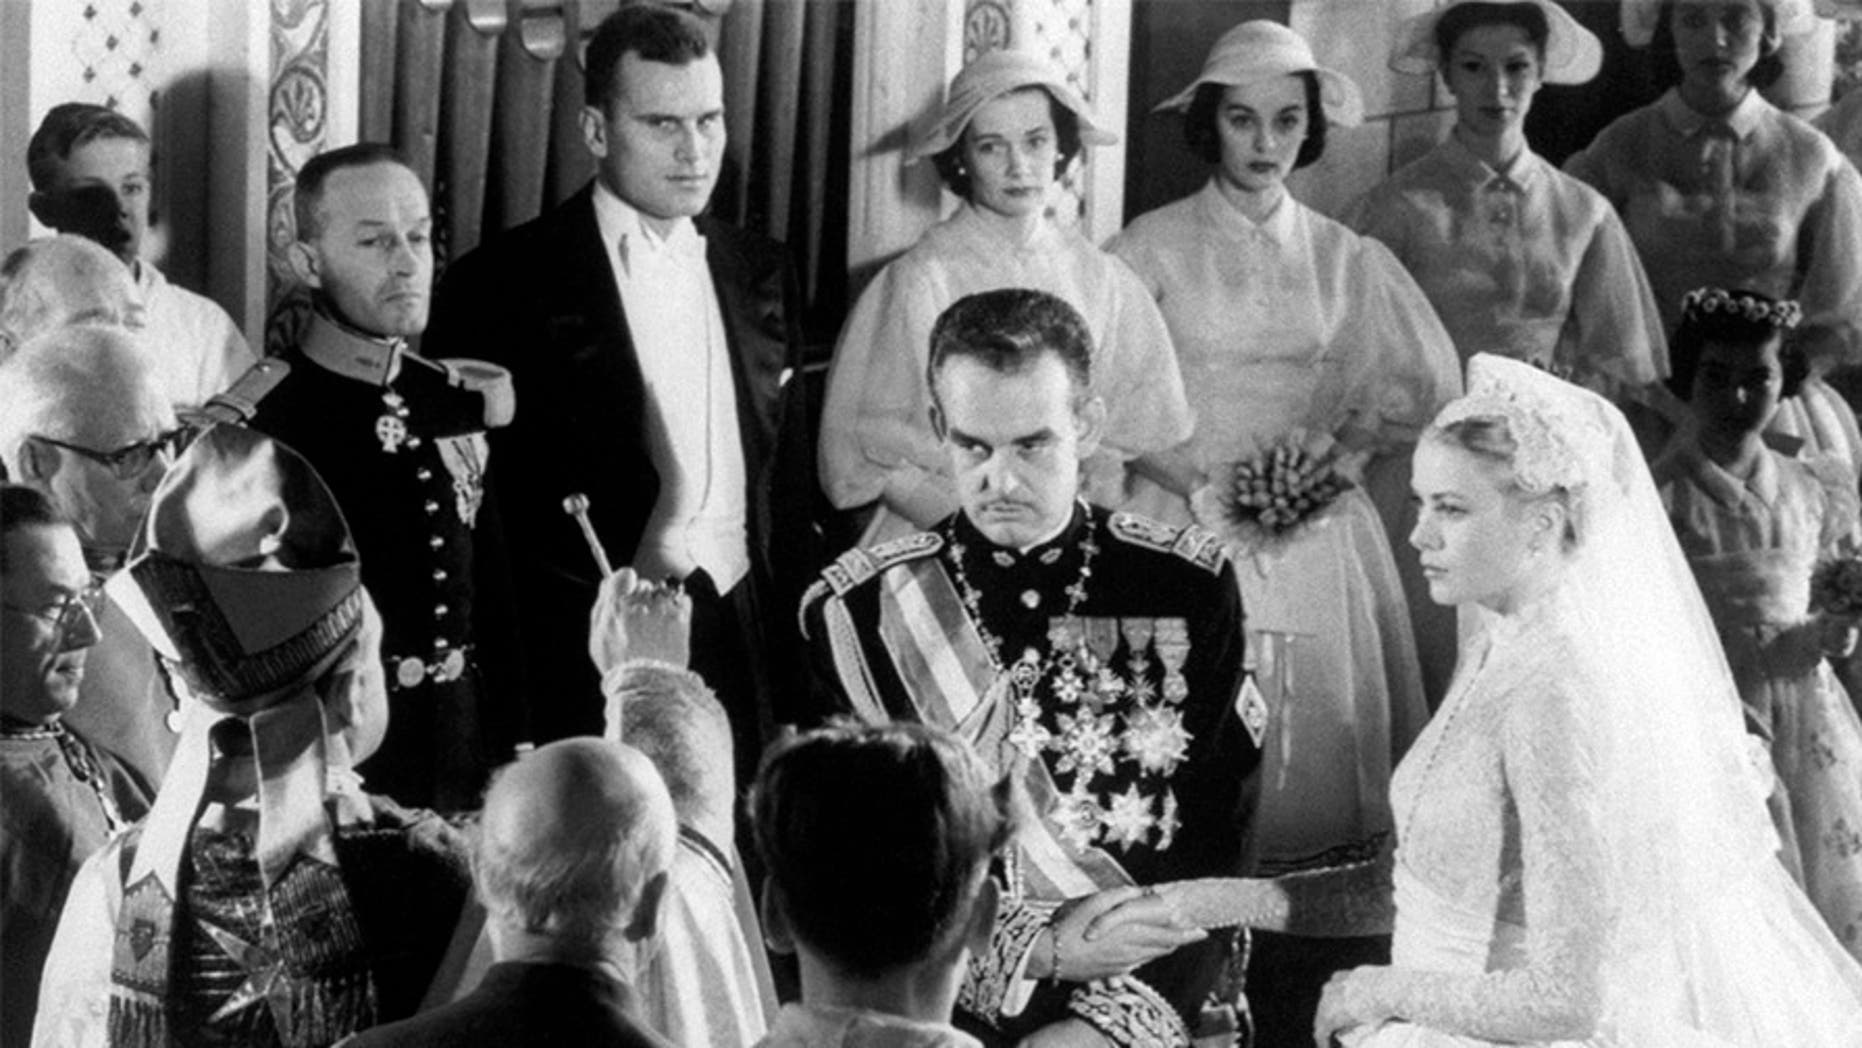 Prince Rainier of Monaco and actress Grace Kelly join hands as Bishop of Monte Carlo Mgr. Gilles Barthe gives them nuptial benediction, during their wedding ceremony at Saint Nicholas Cathedral.